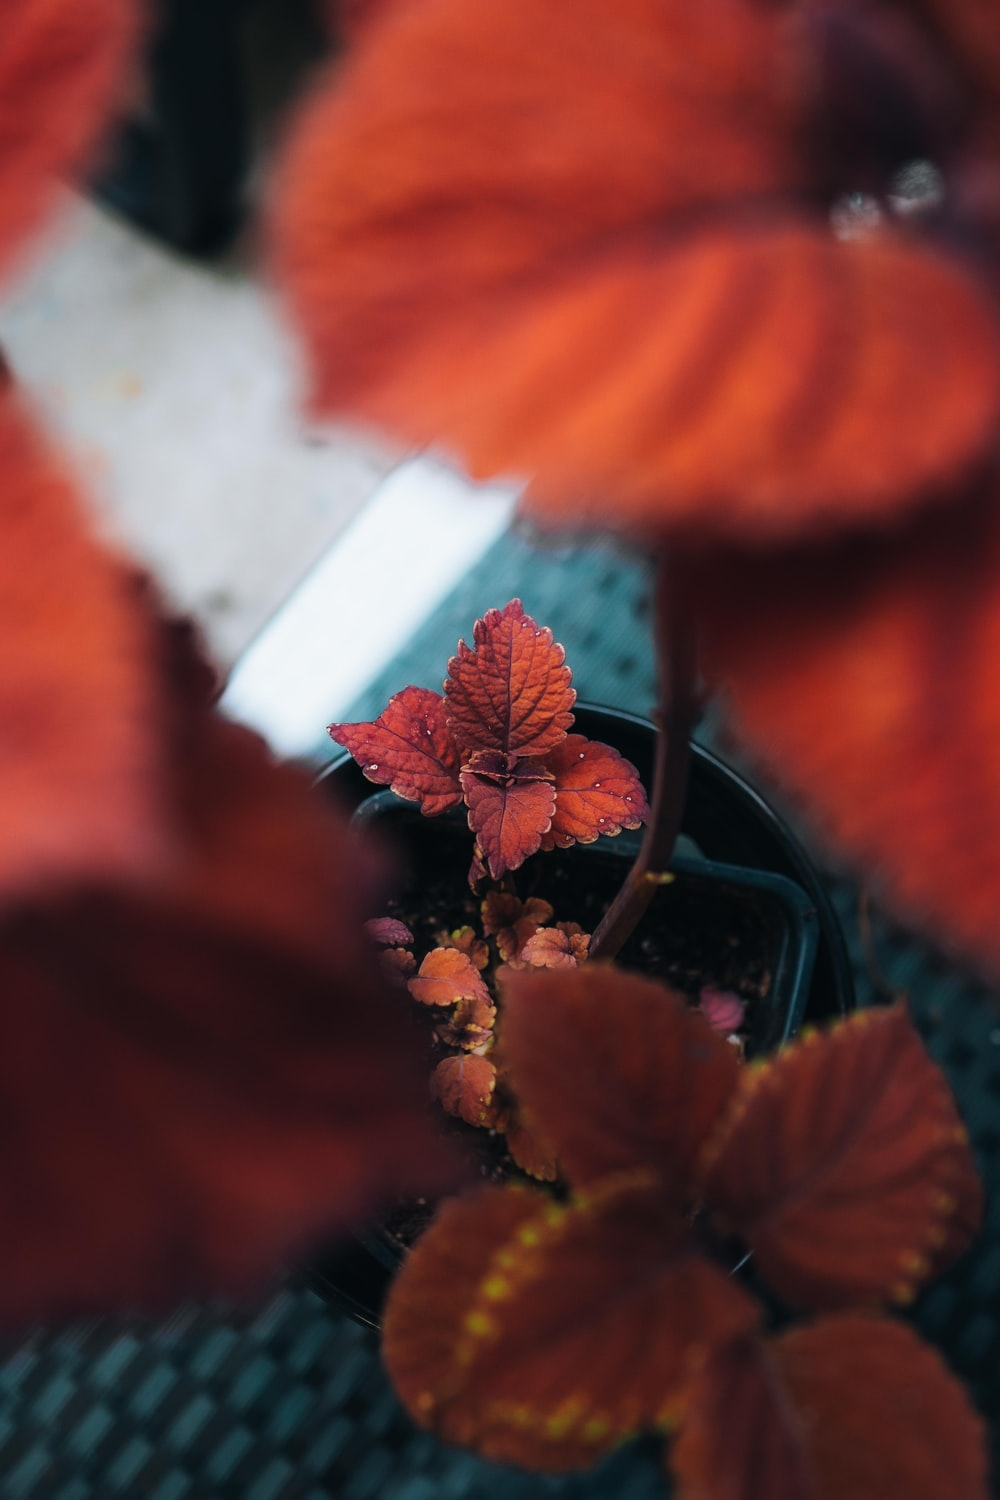 red flower in green plant pot